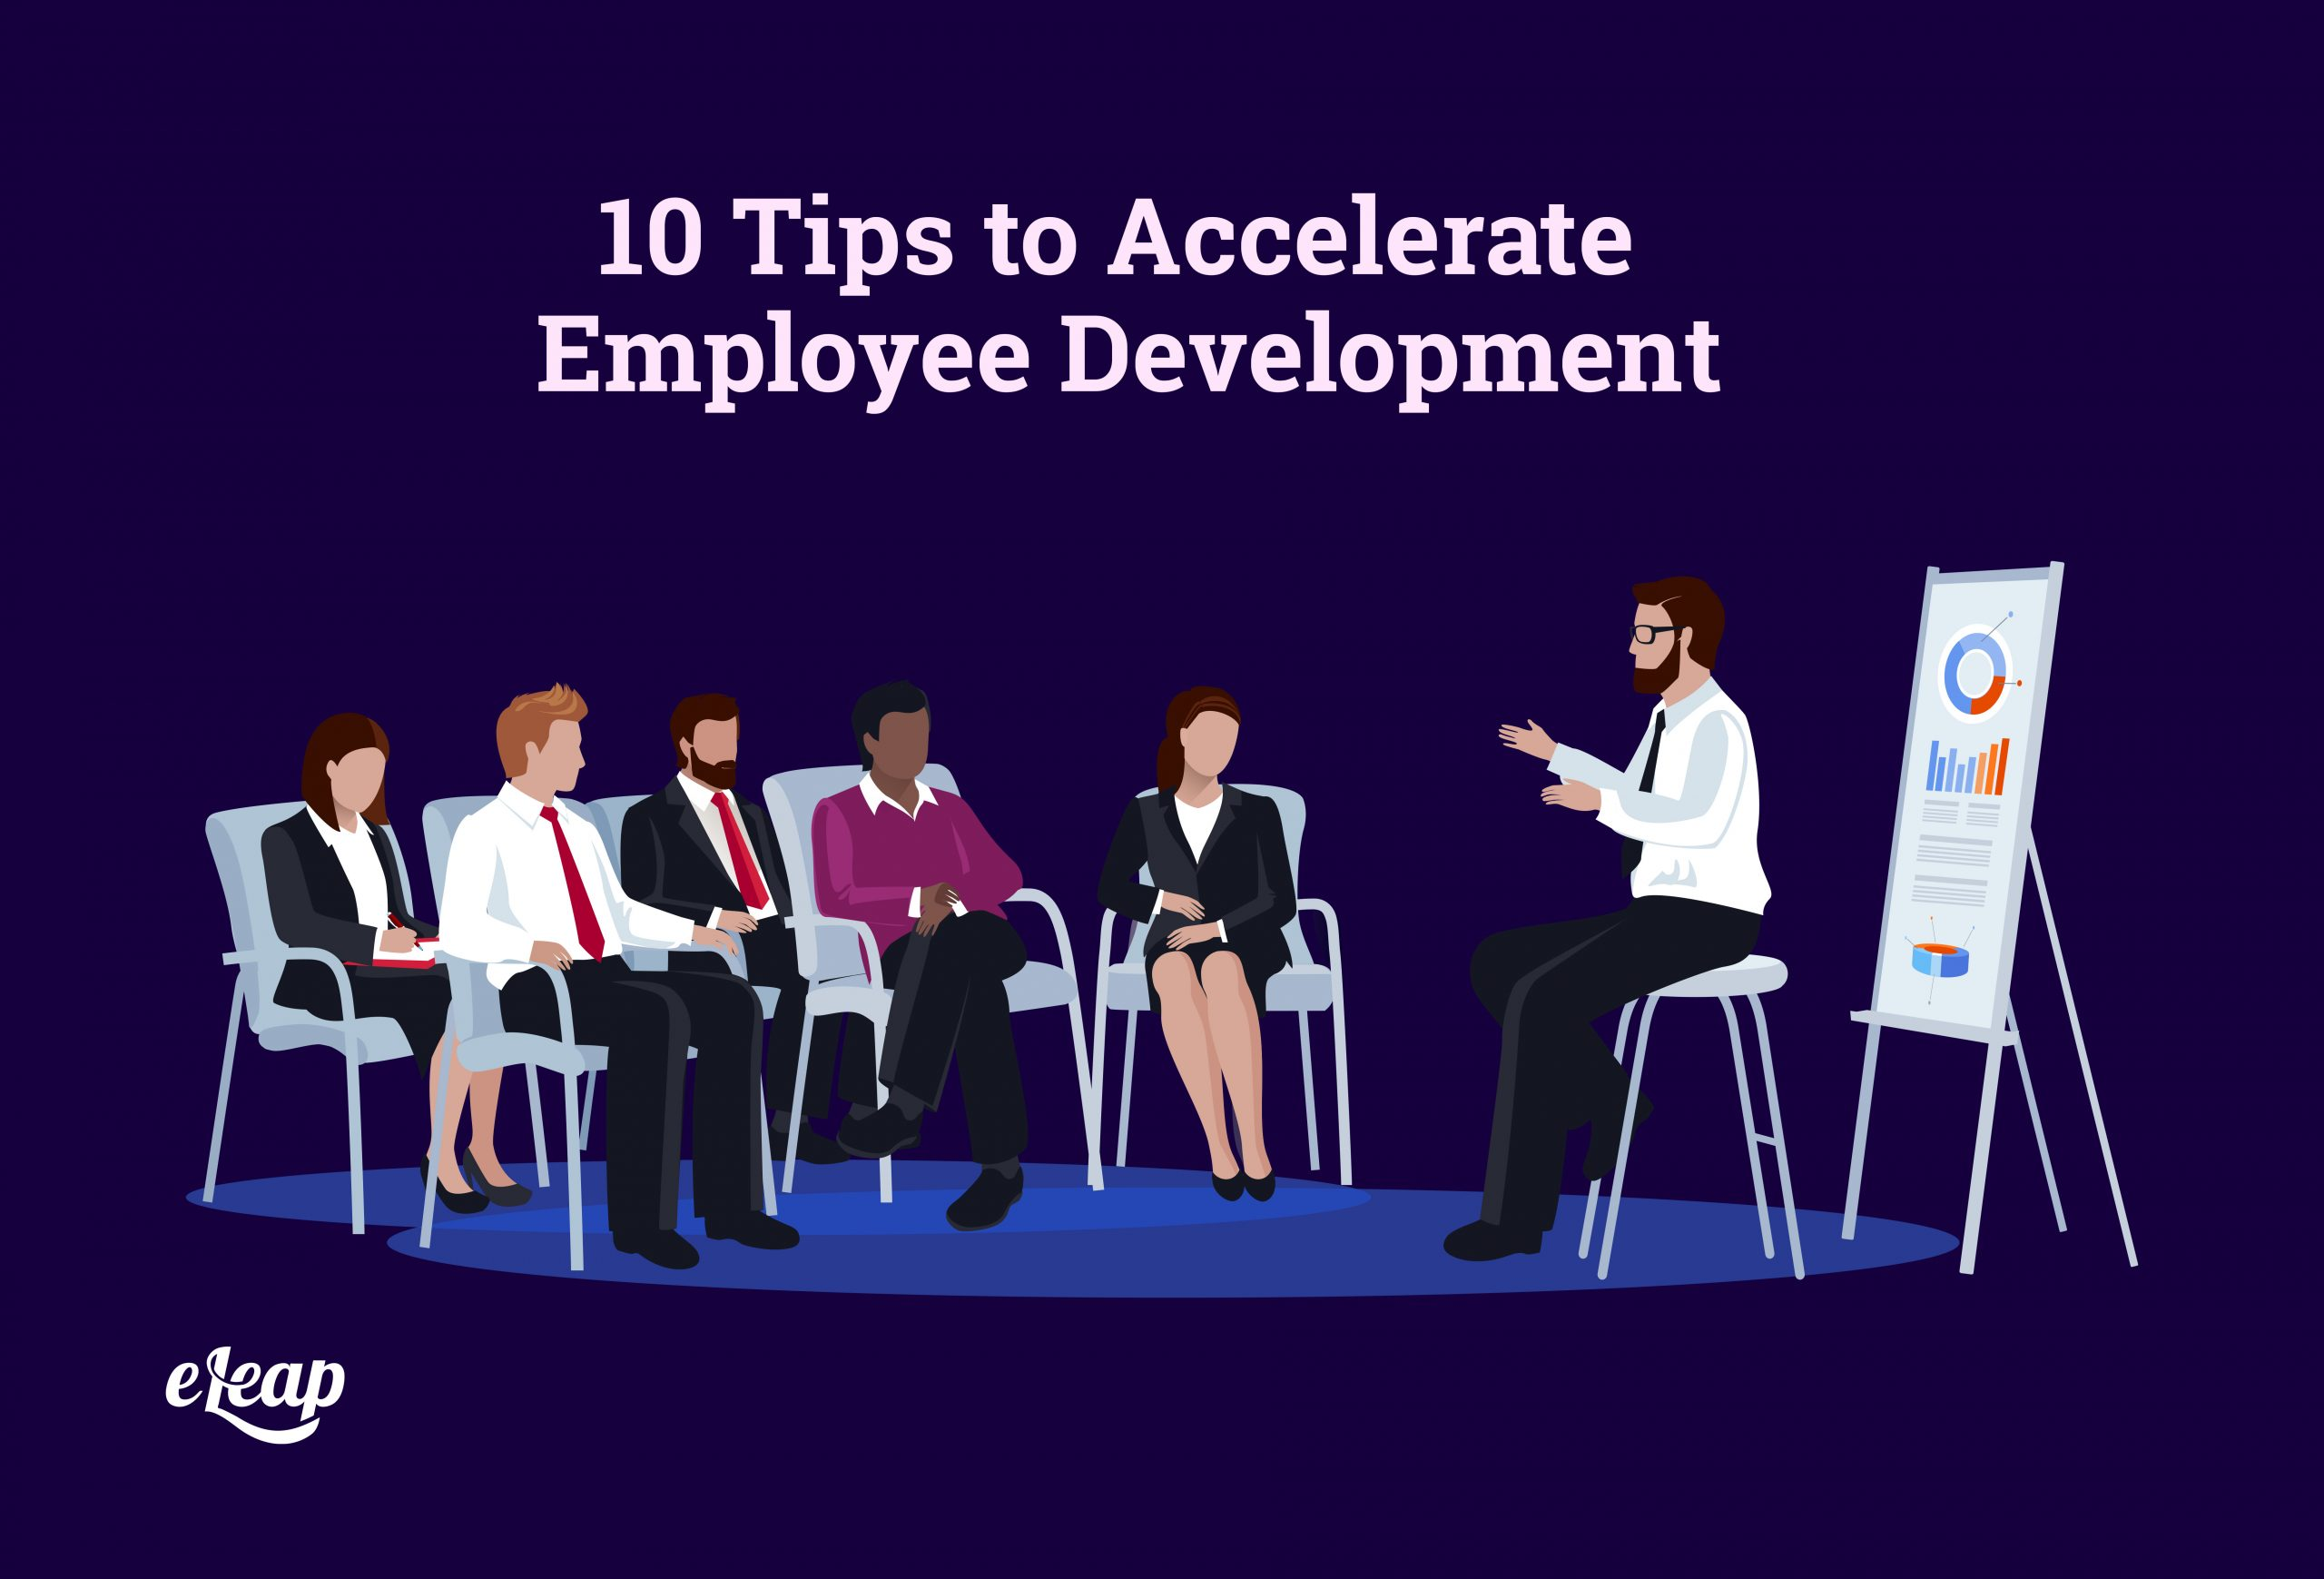 10 Tips to Accelerate Employee Development